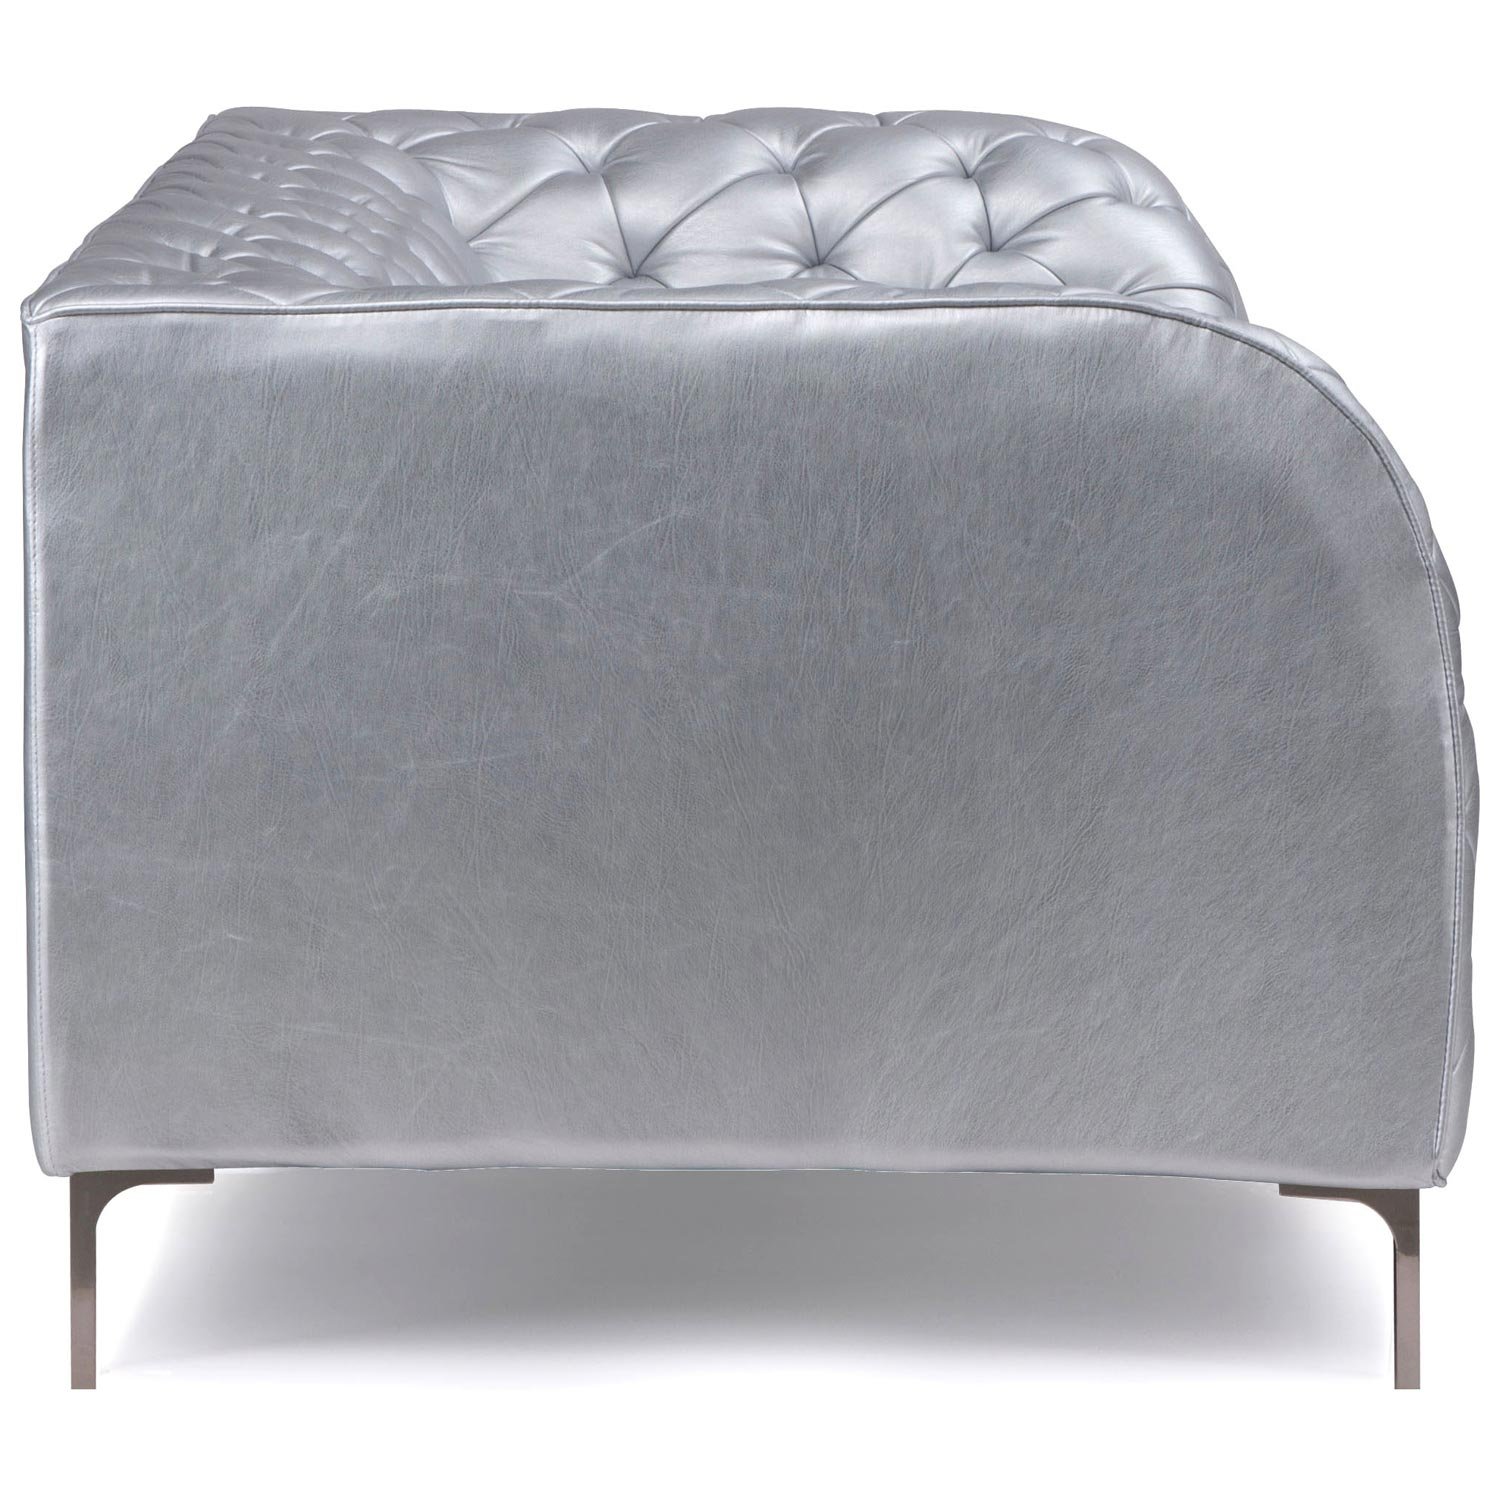 Providence Tufted Armchair - Chrome Steel, Silver - ZM-900276